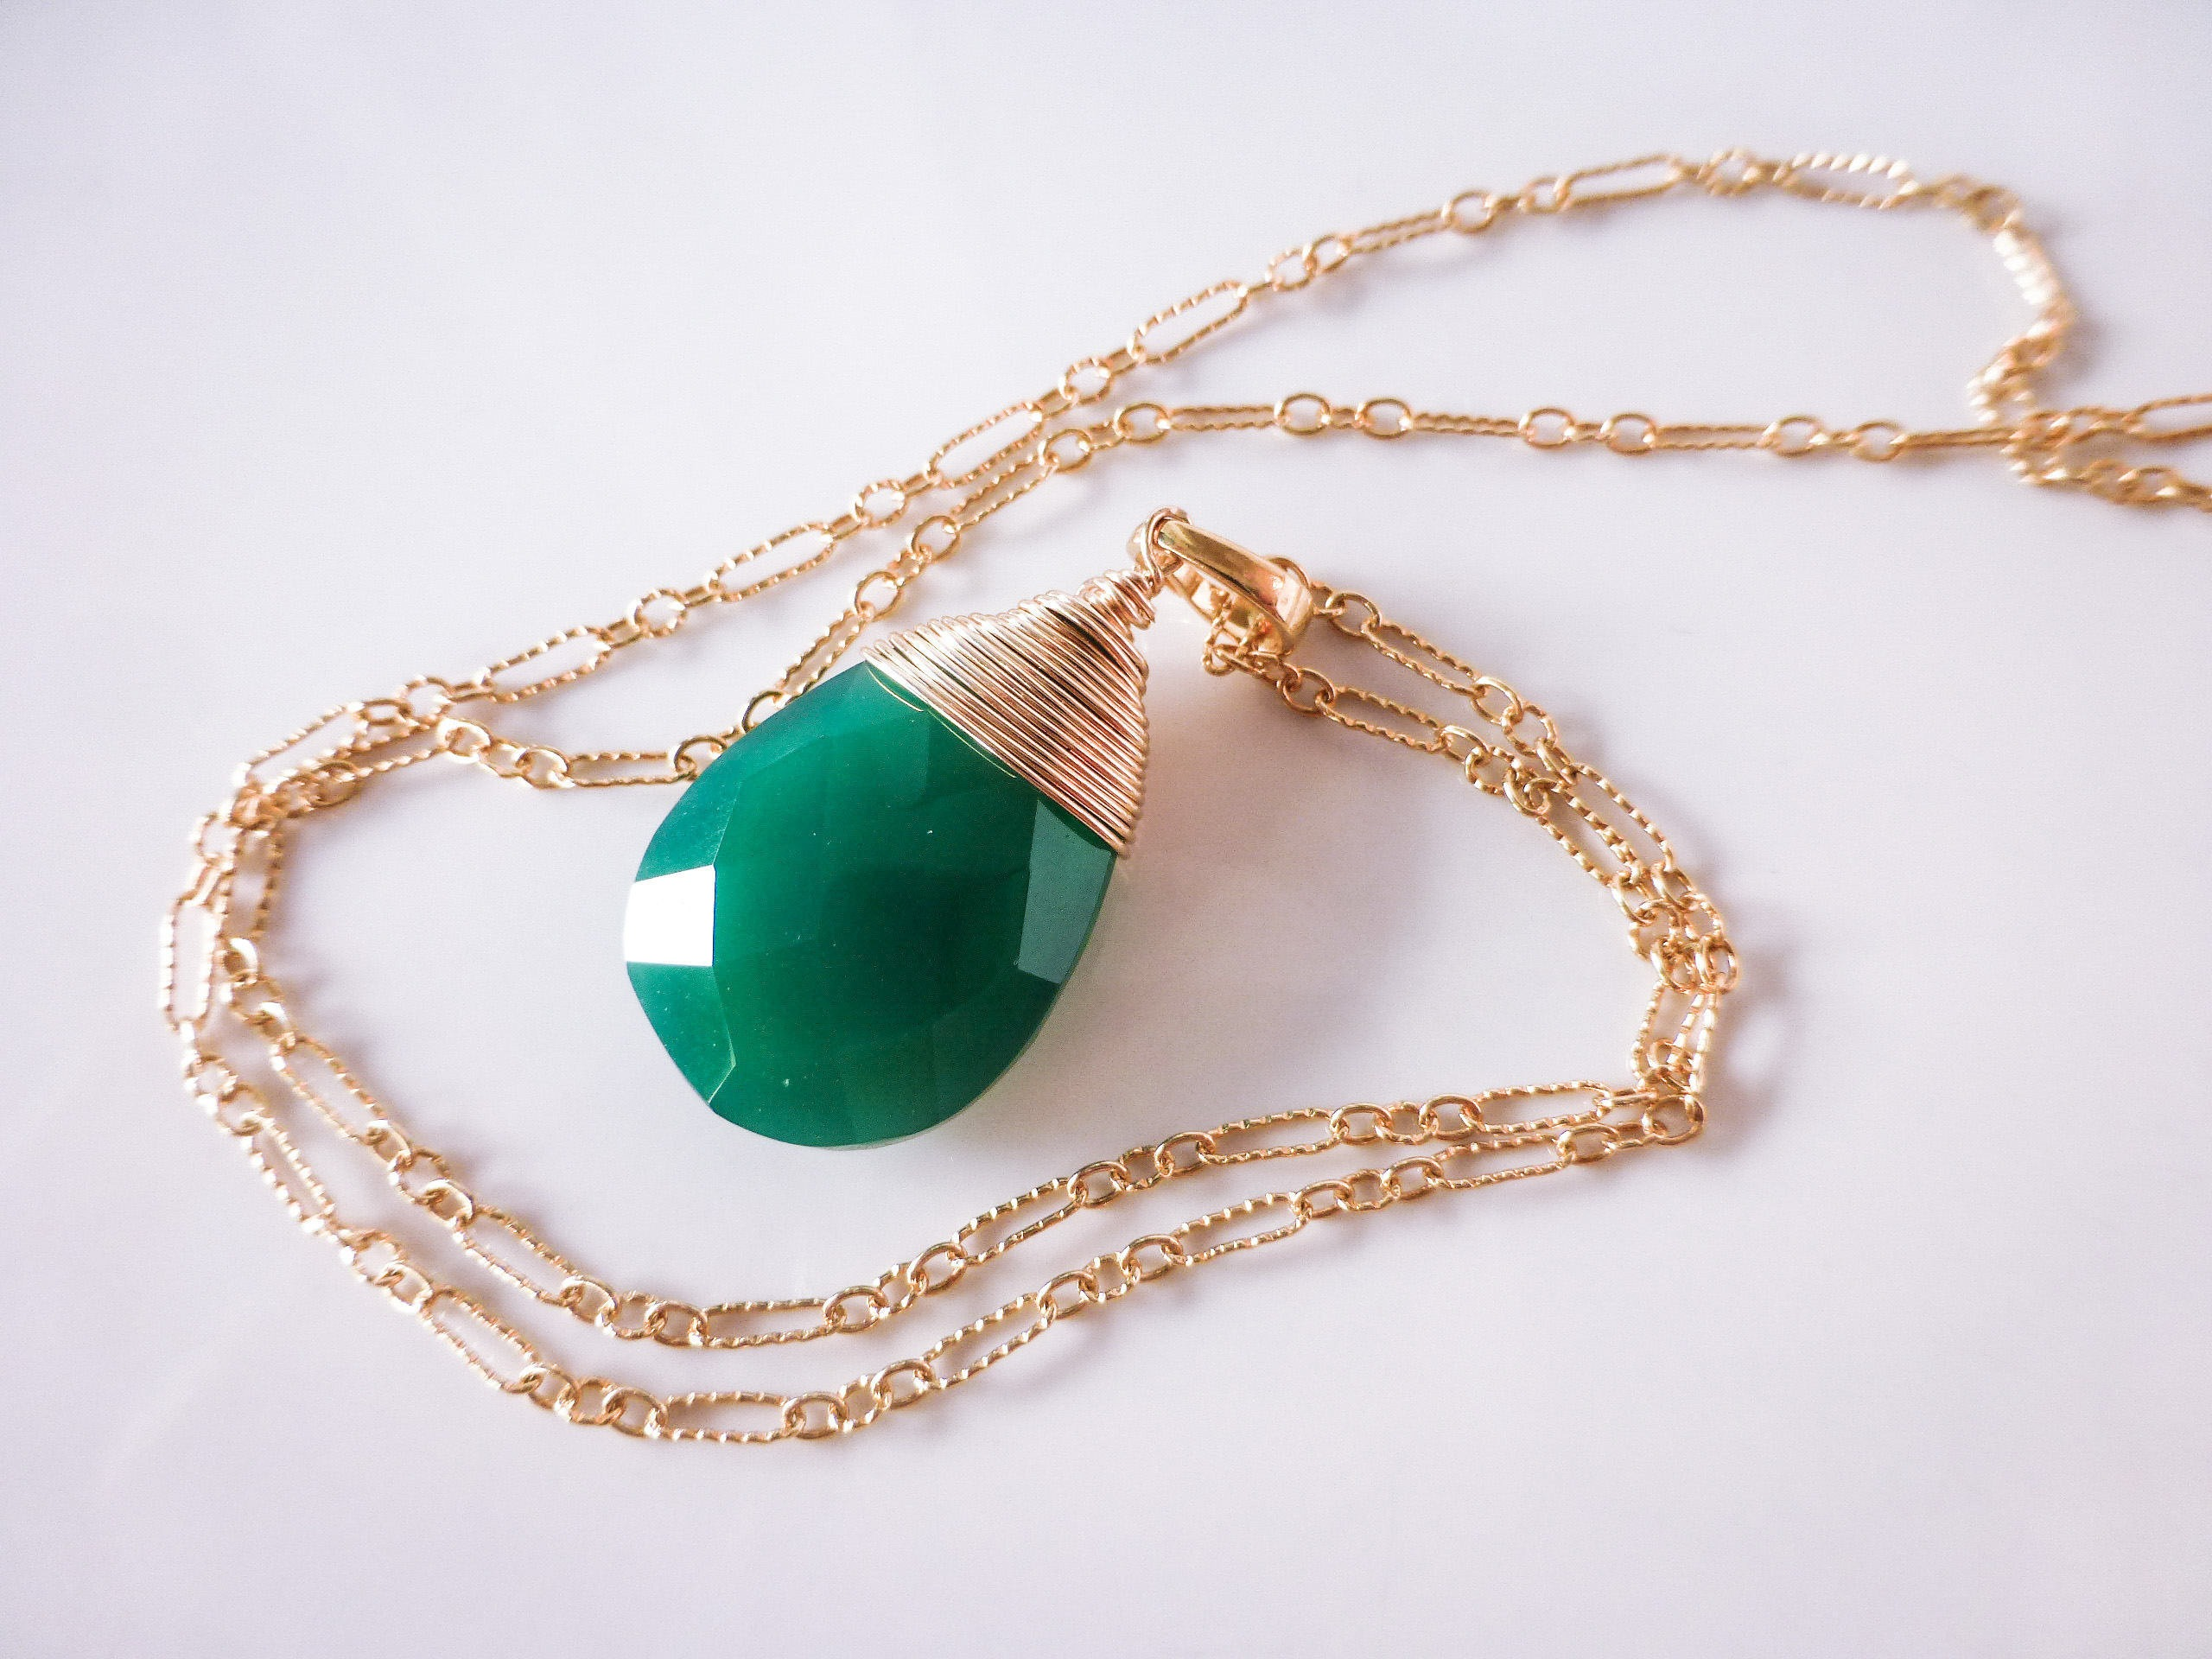 plated rosa silver collections the gold di argentum original green necklace onyx draped jewelry angelo spirito